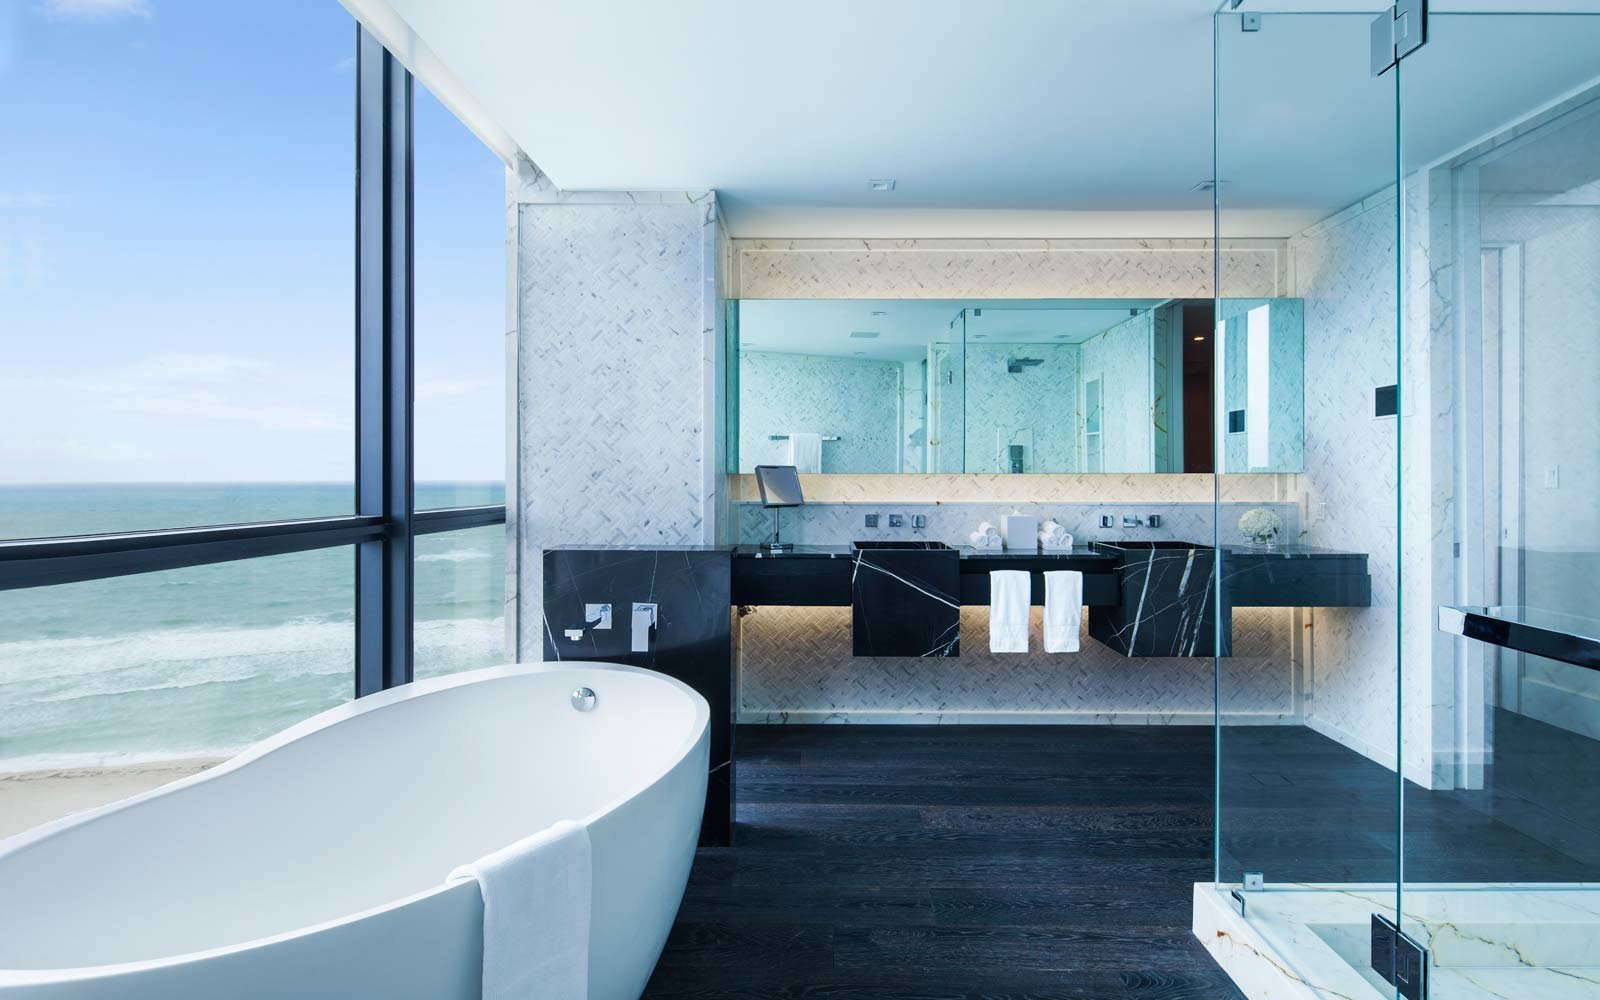 W Hotel South Beach. 20 Hotel Bathrooms That Will Have You Spending Vacation in the Tub